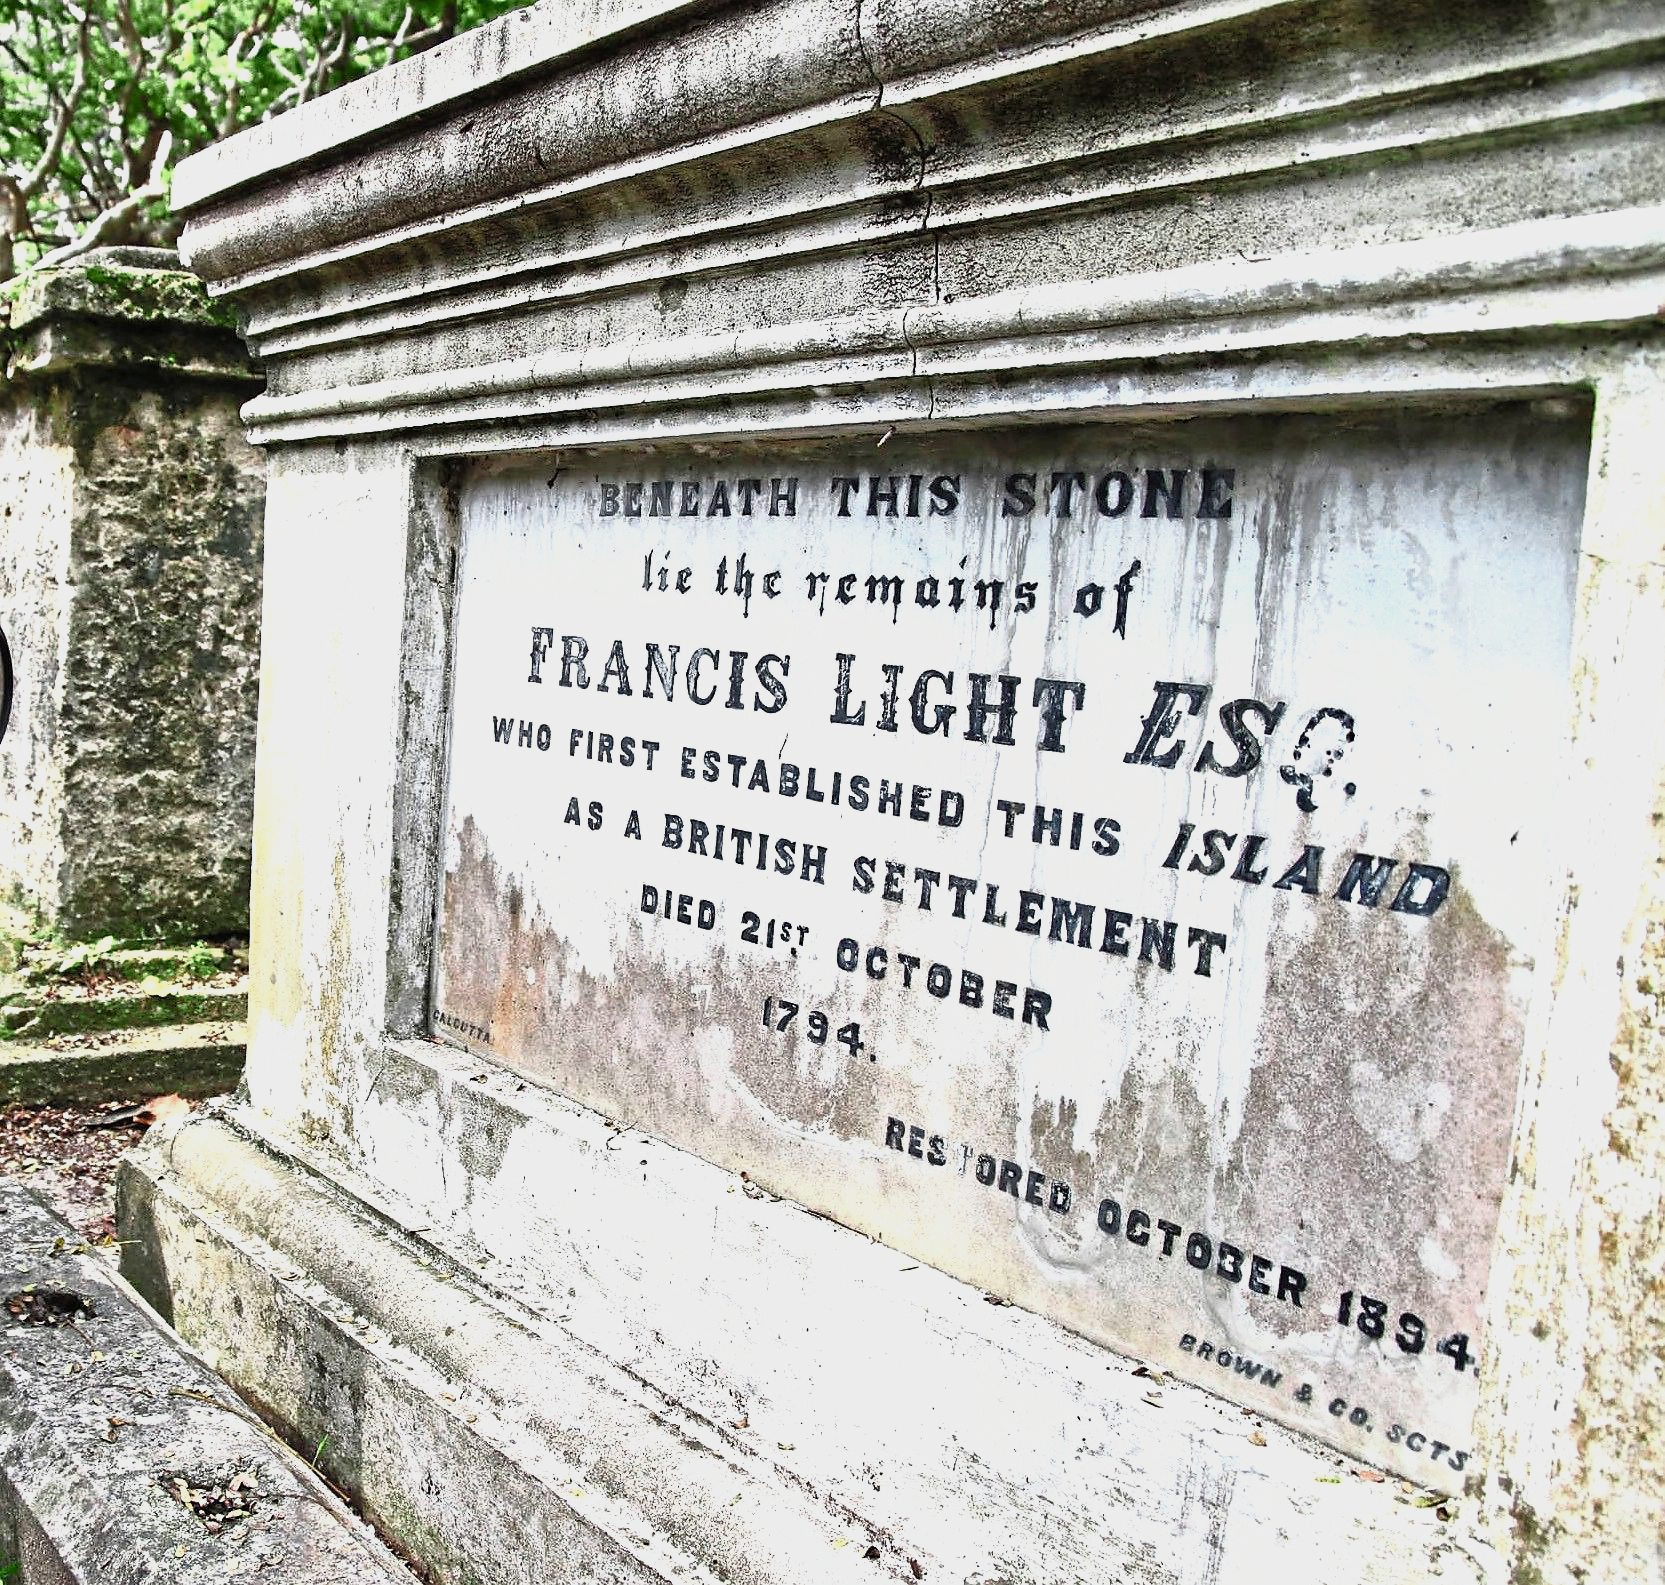 Among the notable ones is Captain Francis Light, who was buried here in 1794.